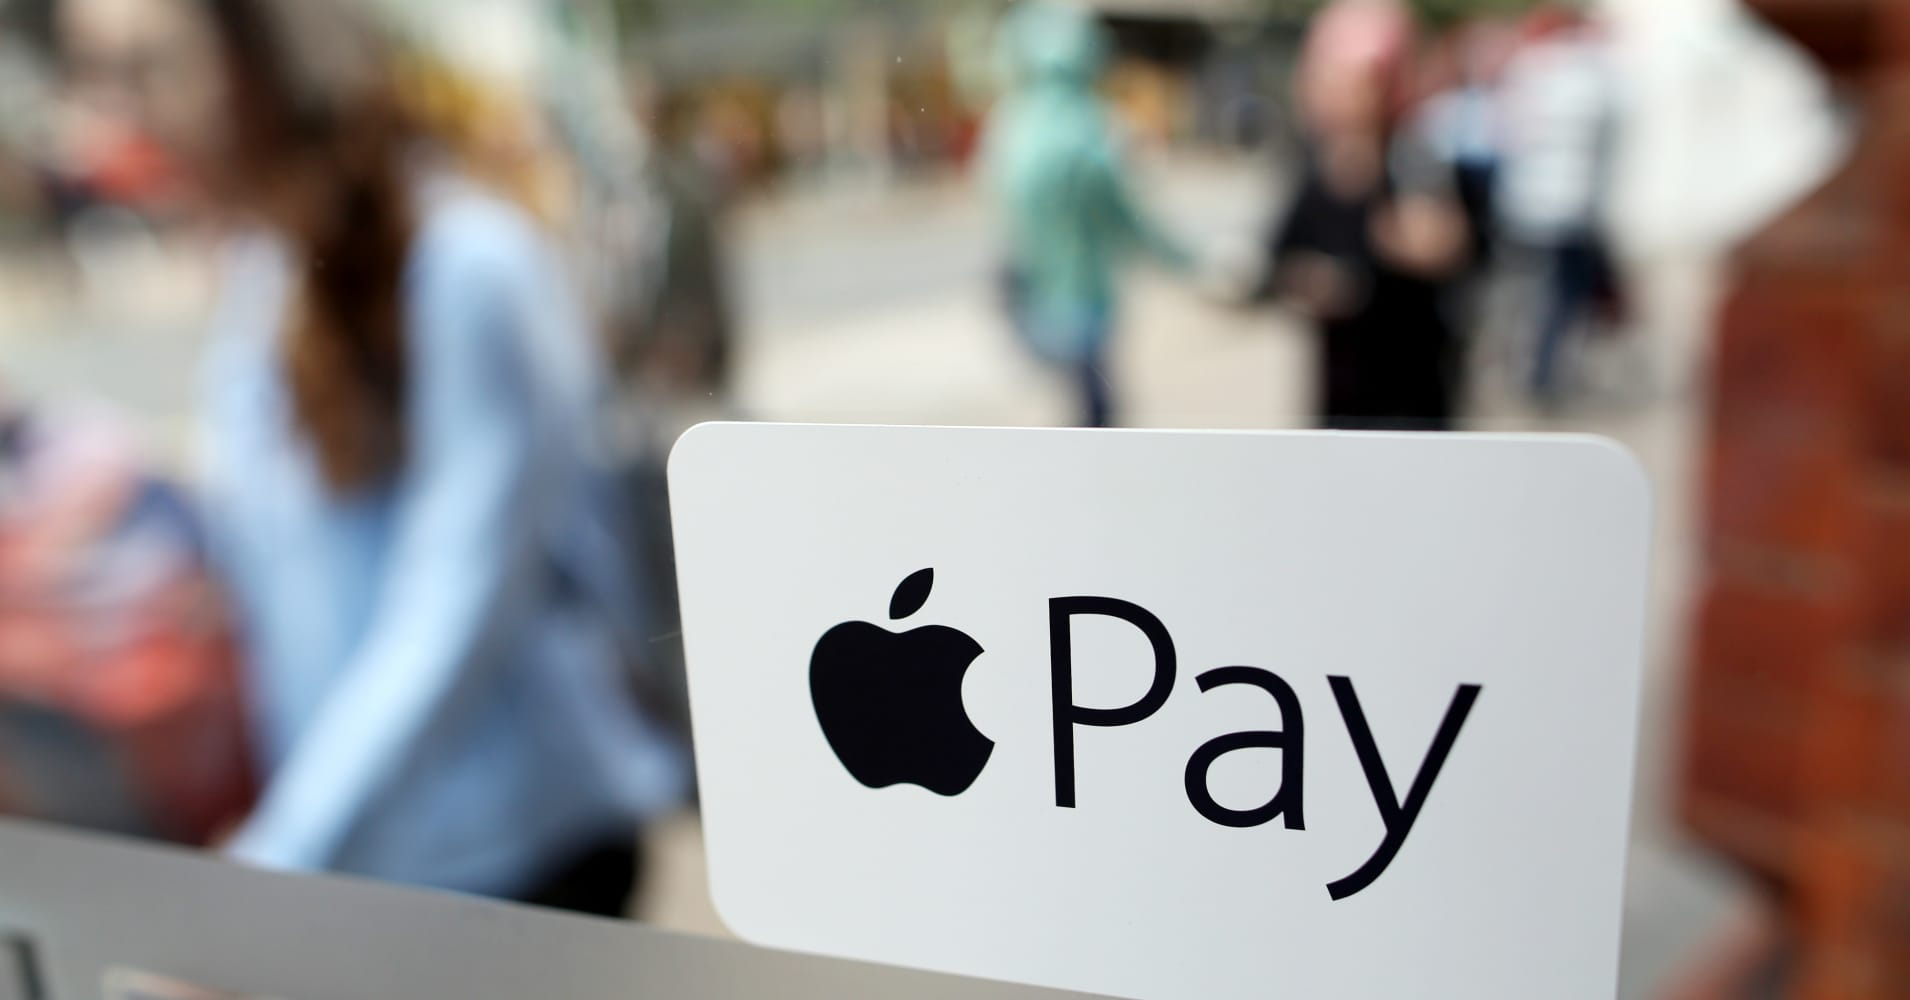 Apple Pay Violates Patents Held by Security Technology Inventor, Lawsuit Alleges